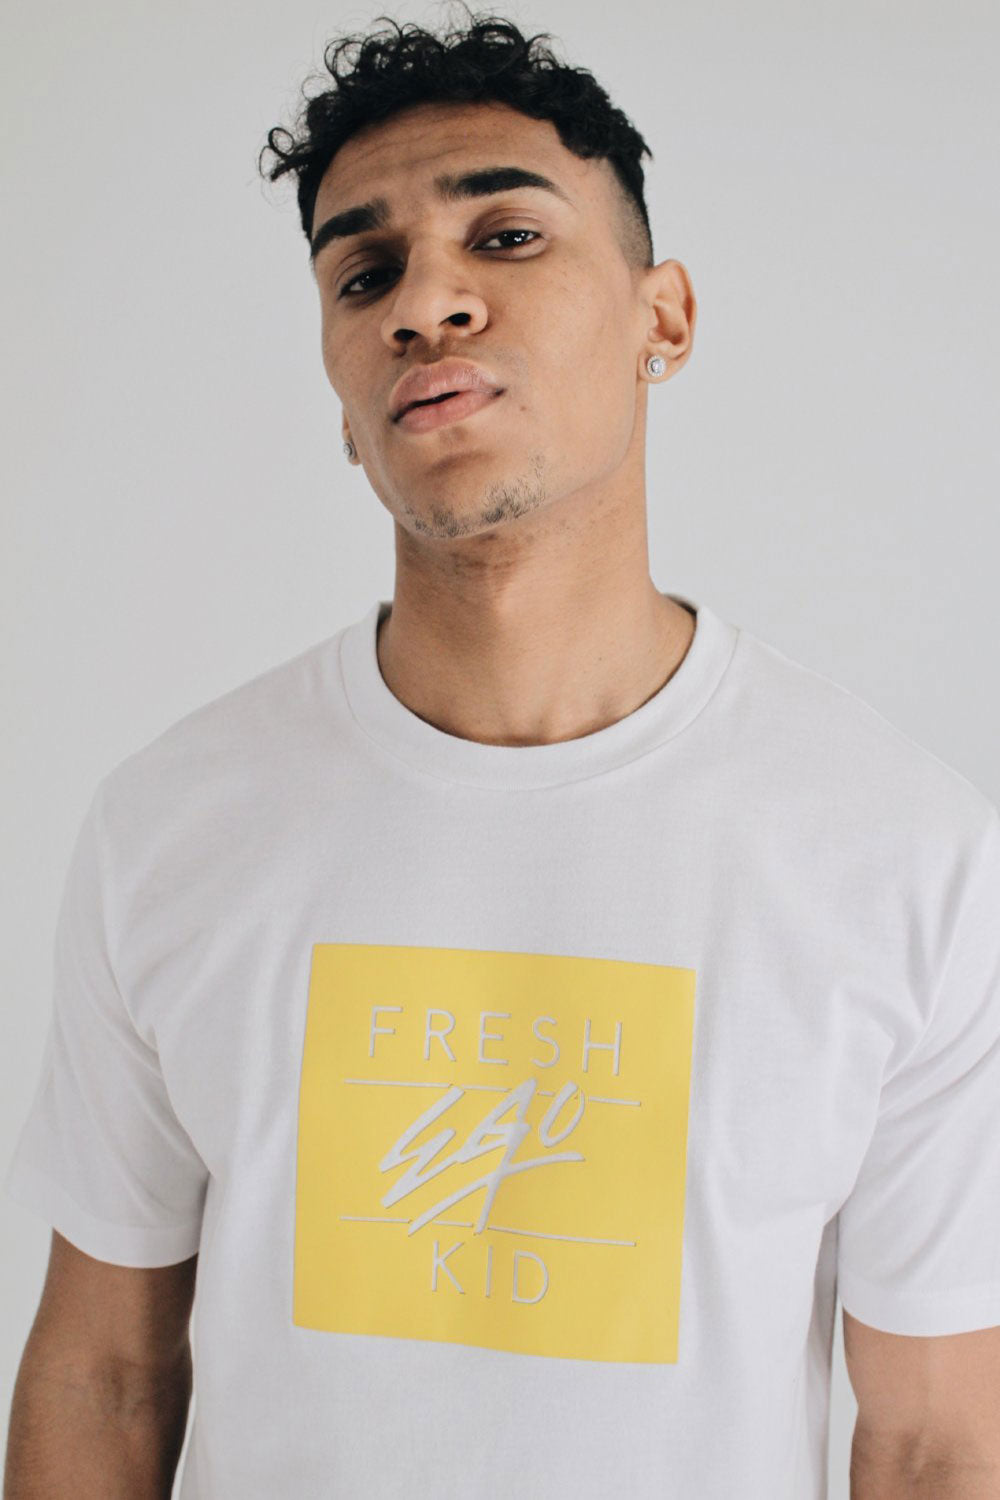 Fresh Ego Kid Box Logo Tee - White / Yellow